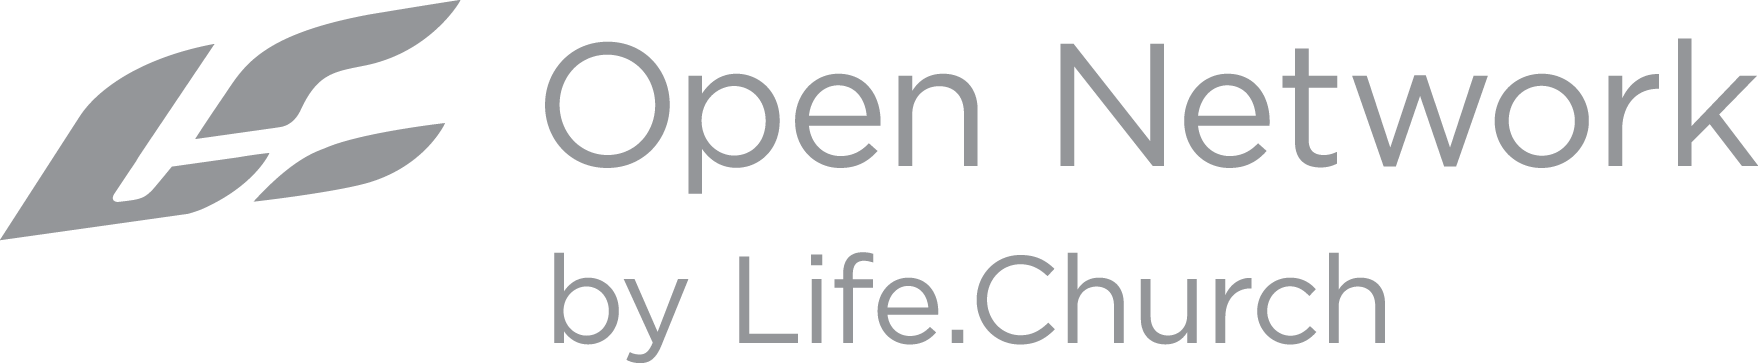 OpenNetworld-by-Life-Church.png